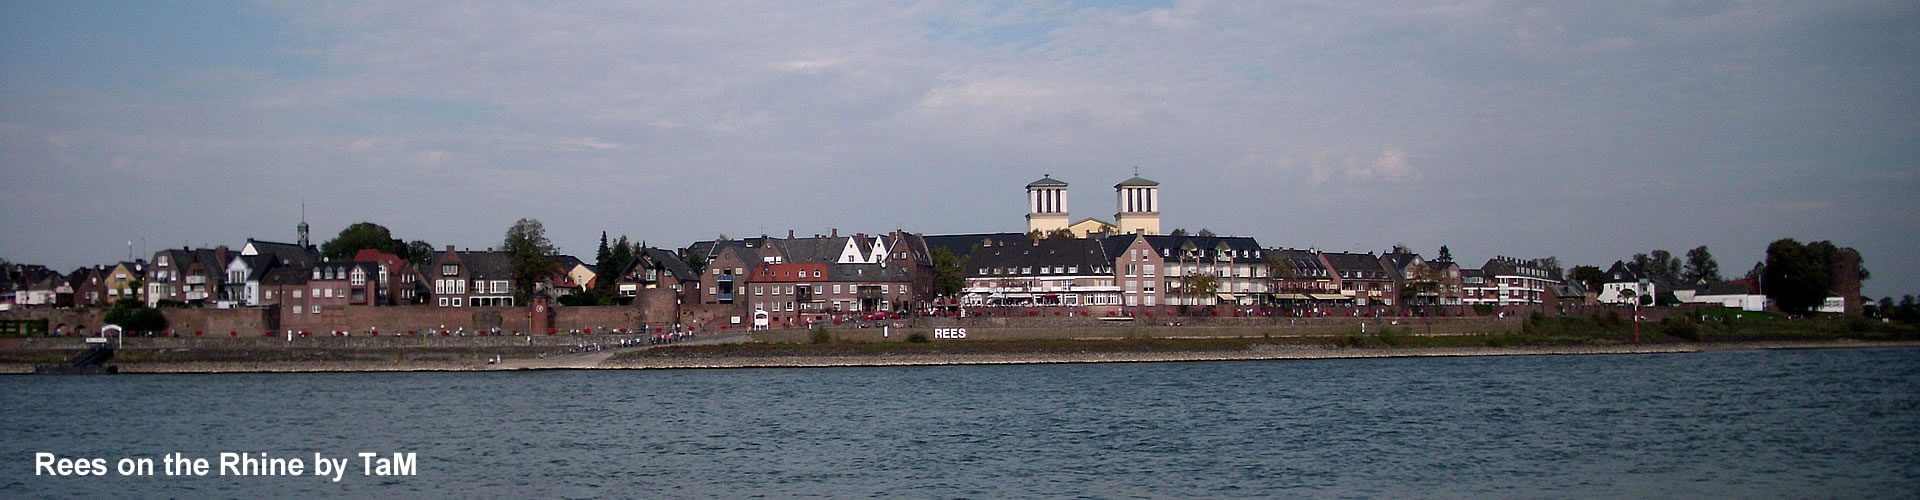 Rees on the Rhine